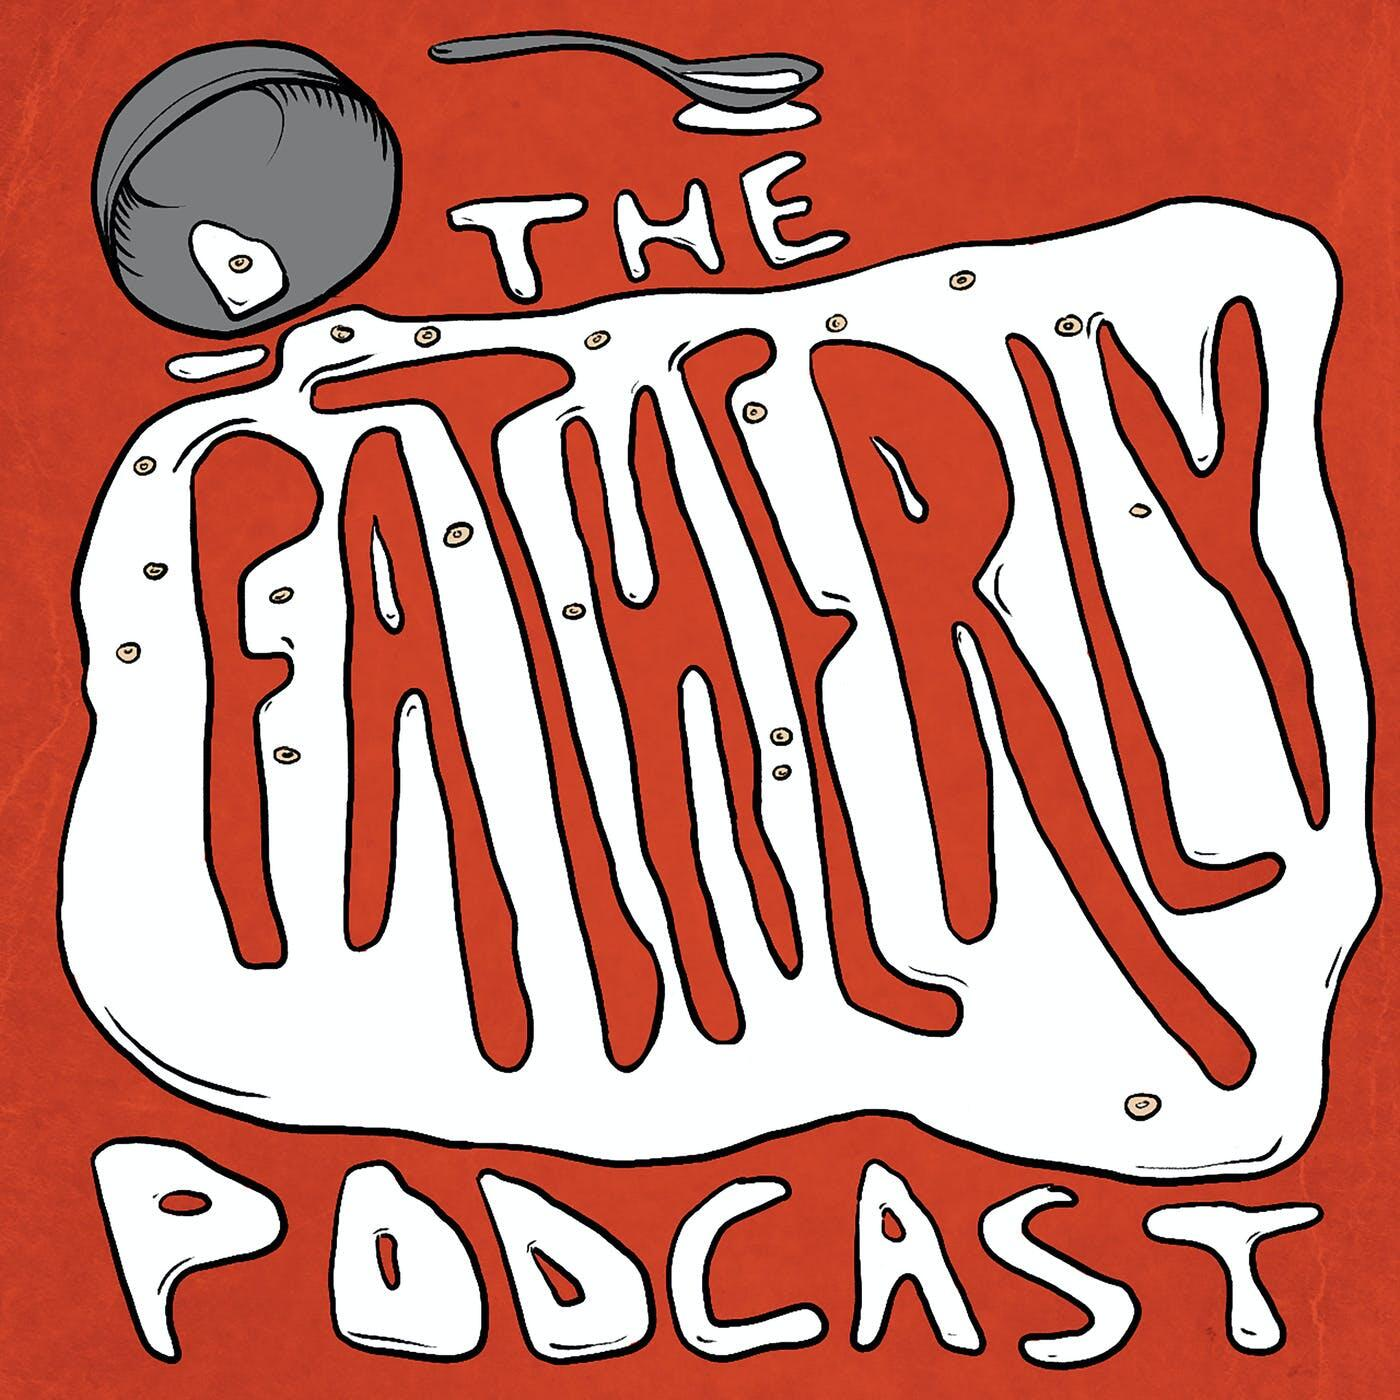 Listen to Out To Sea: Legendary Surfer Laird Hamilton On Riding Giants and Raising Daughters | The Fatherly Podcast | Podcasts